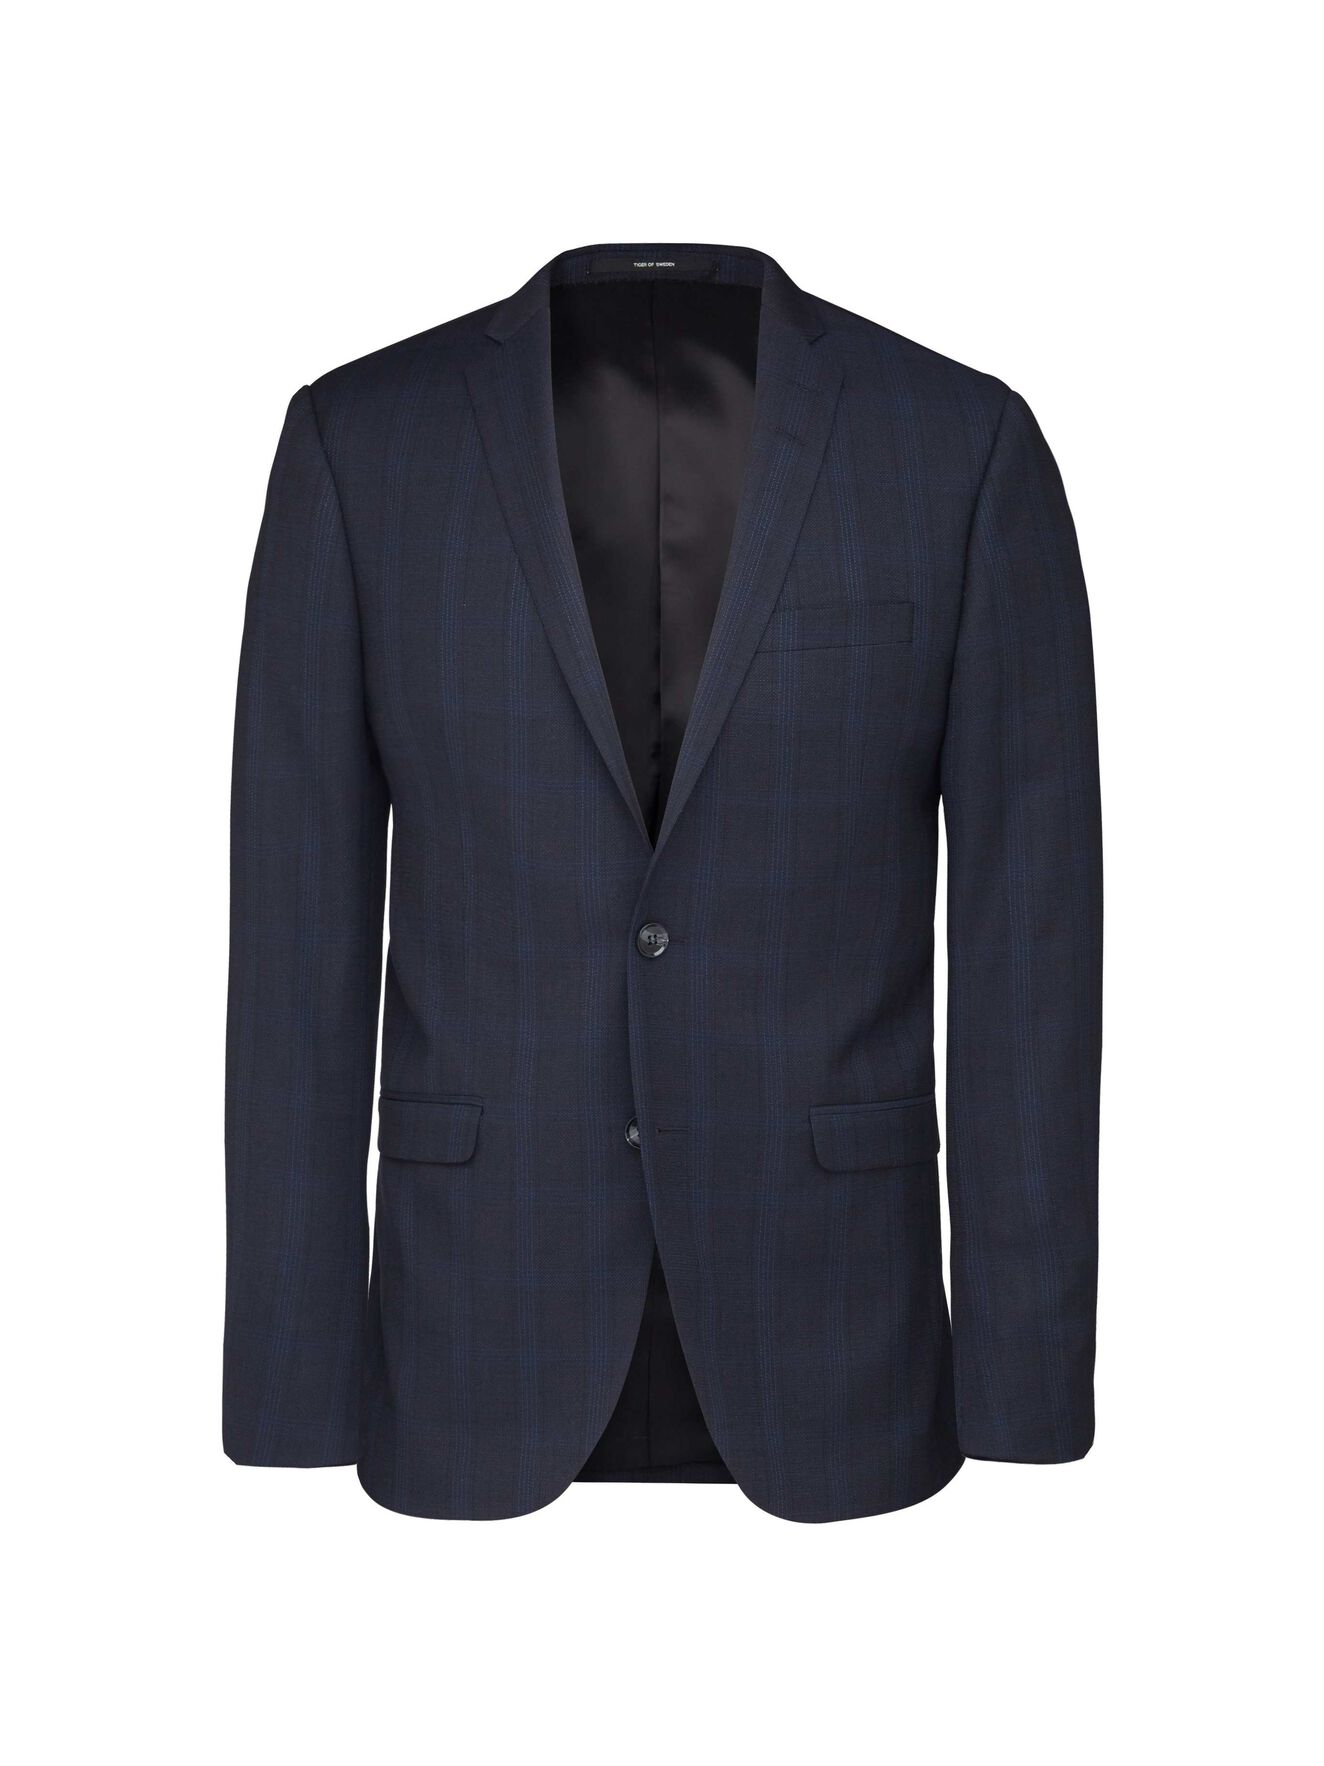 Harrie blazer in Blues from Tiger of Sweden